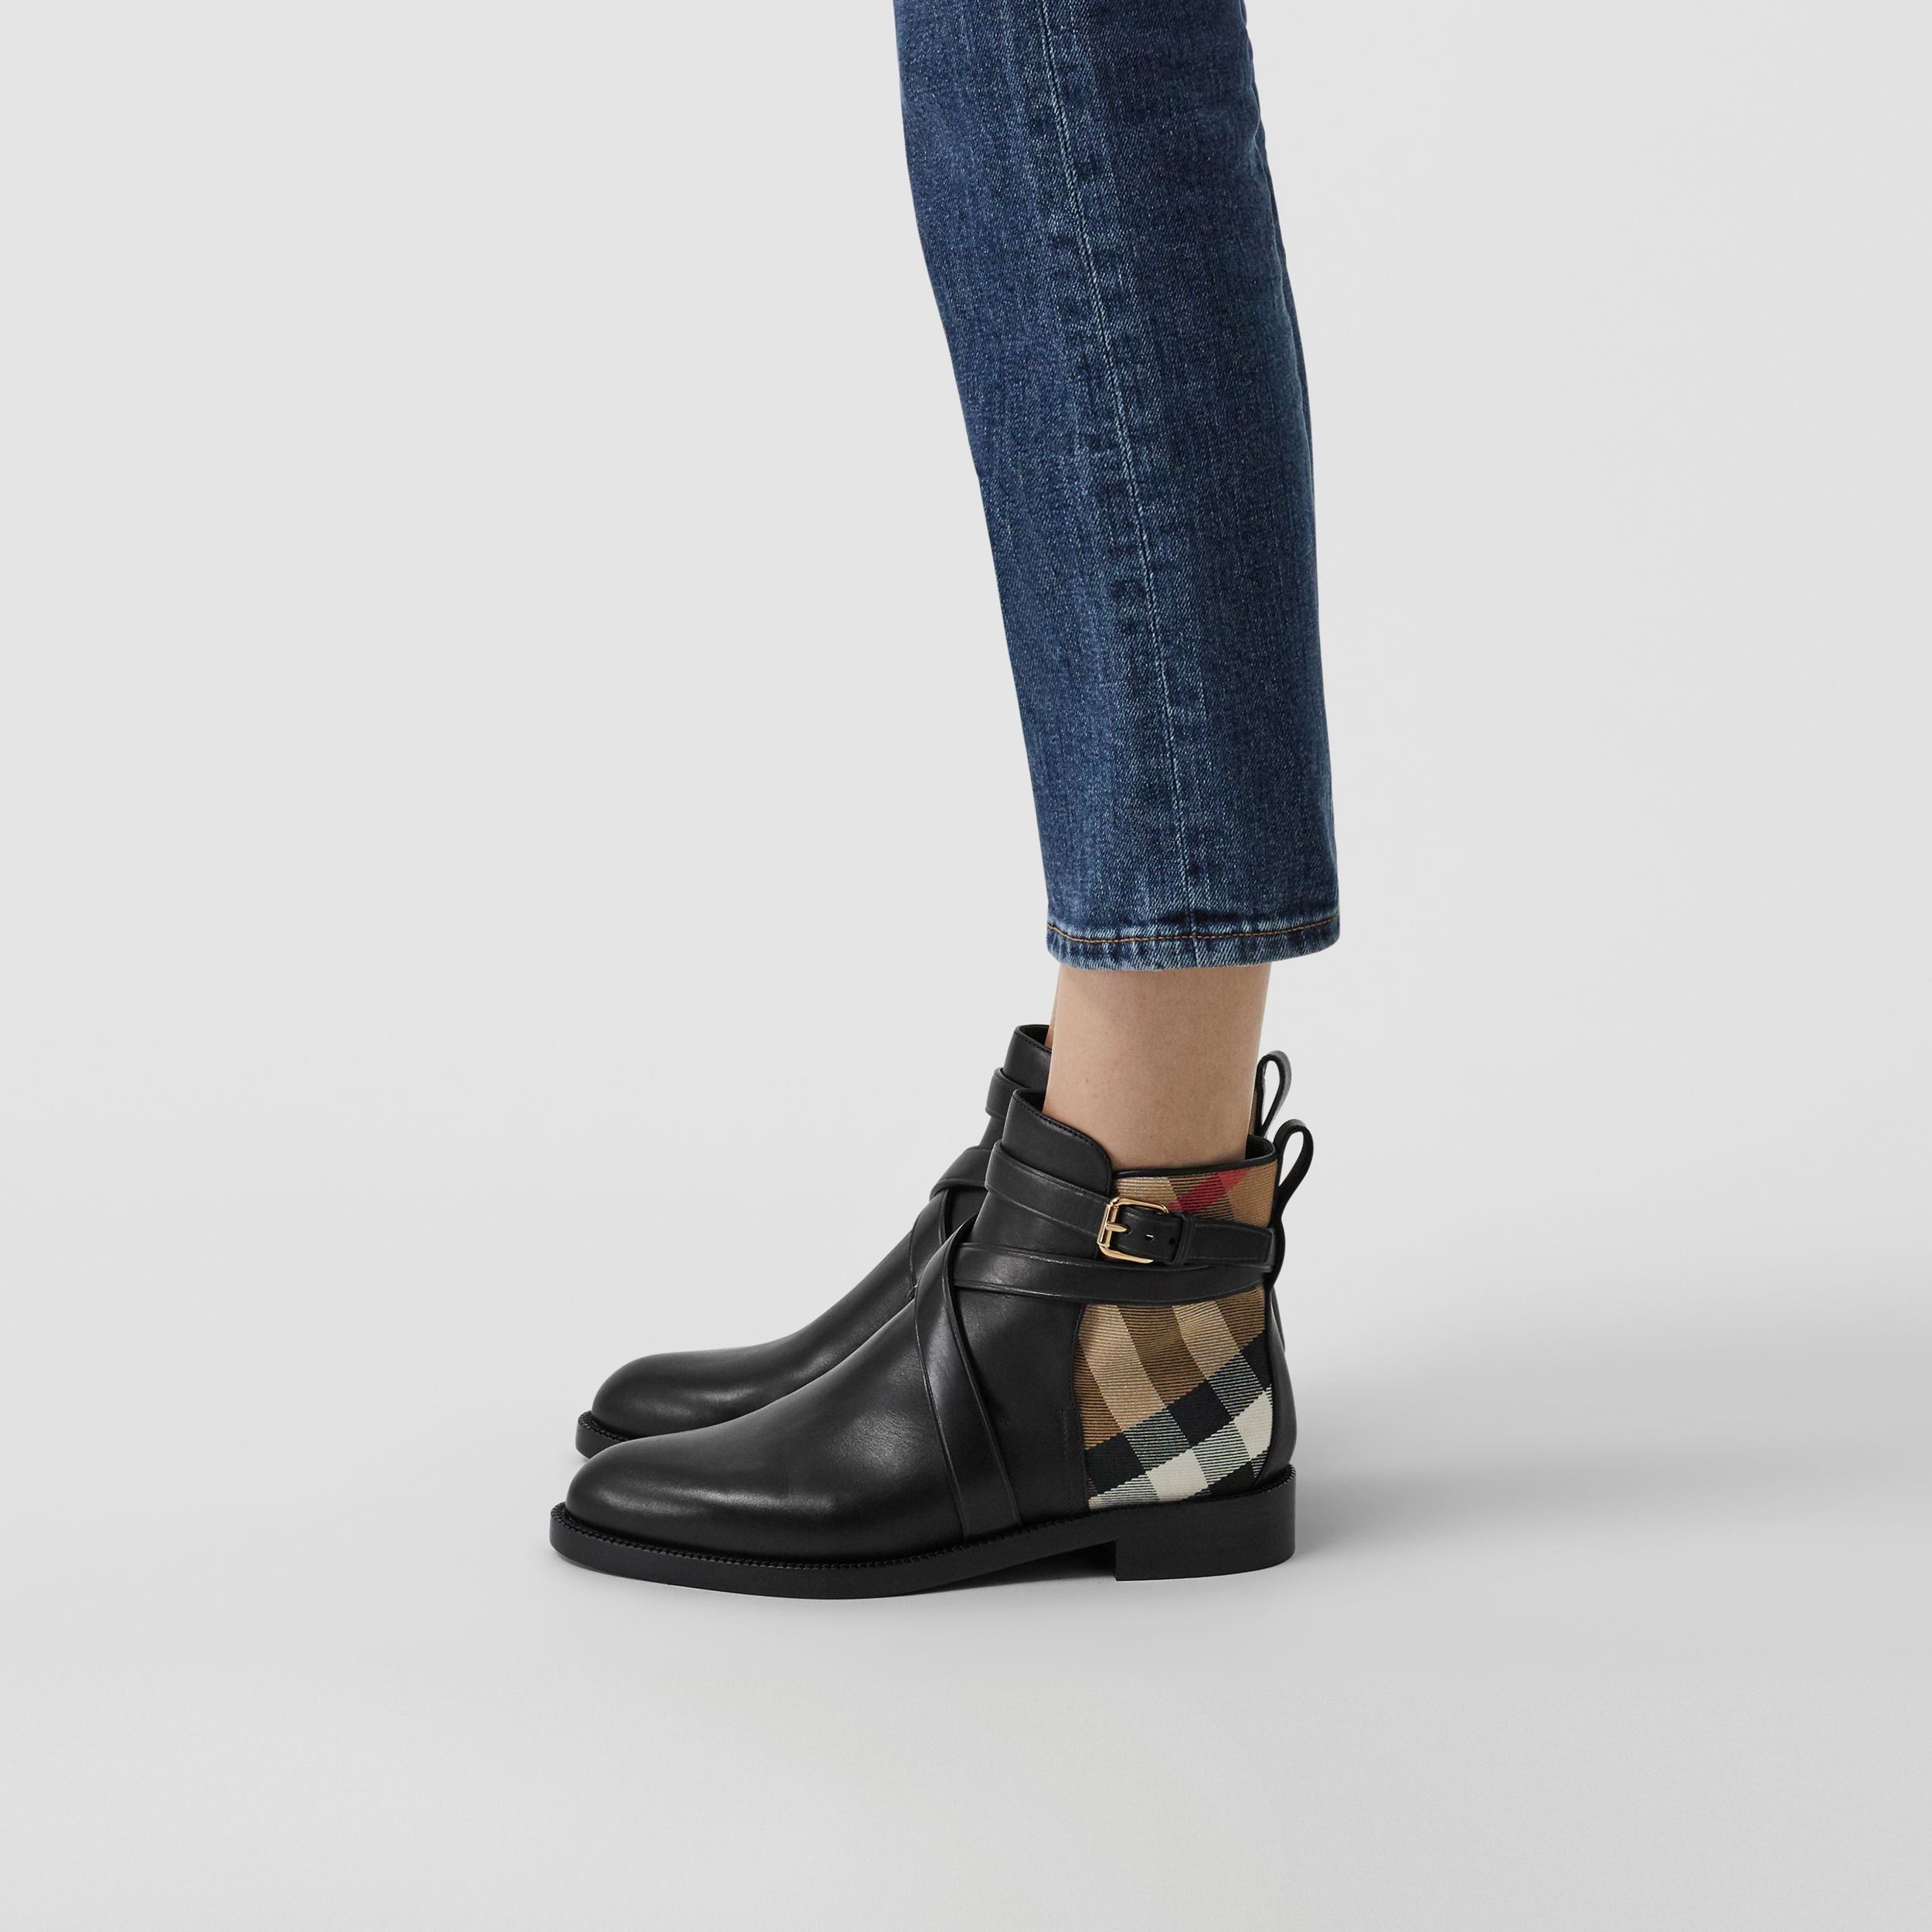 House Check and Leather Ankle Boots in Black - Women | Burberry United Kingdom - 3